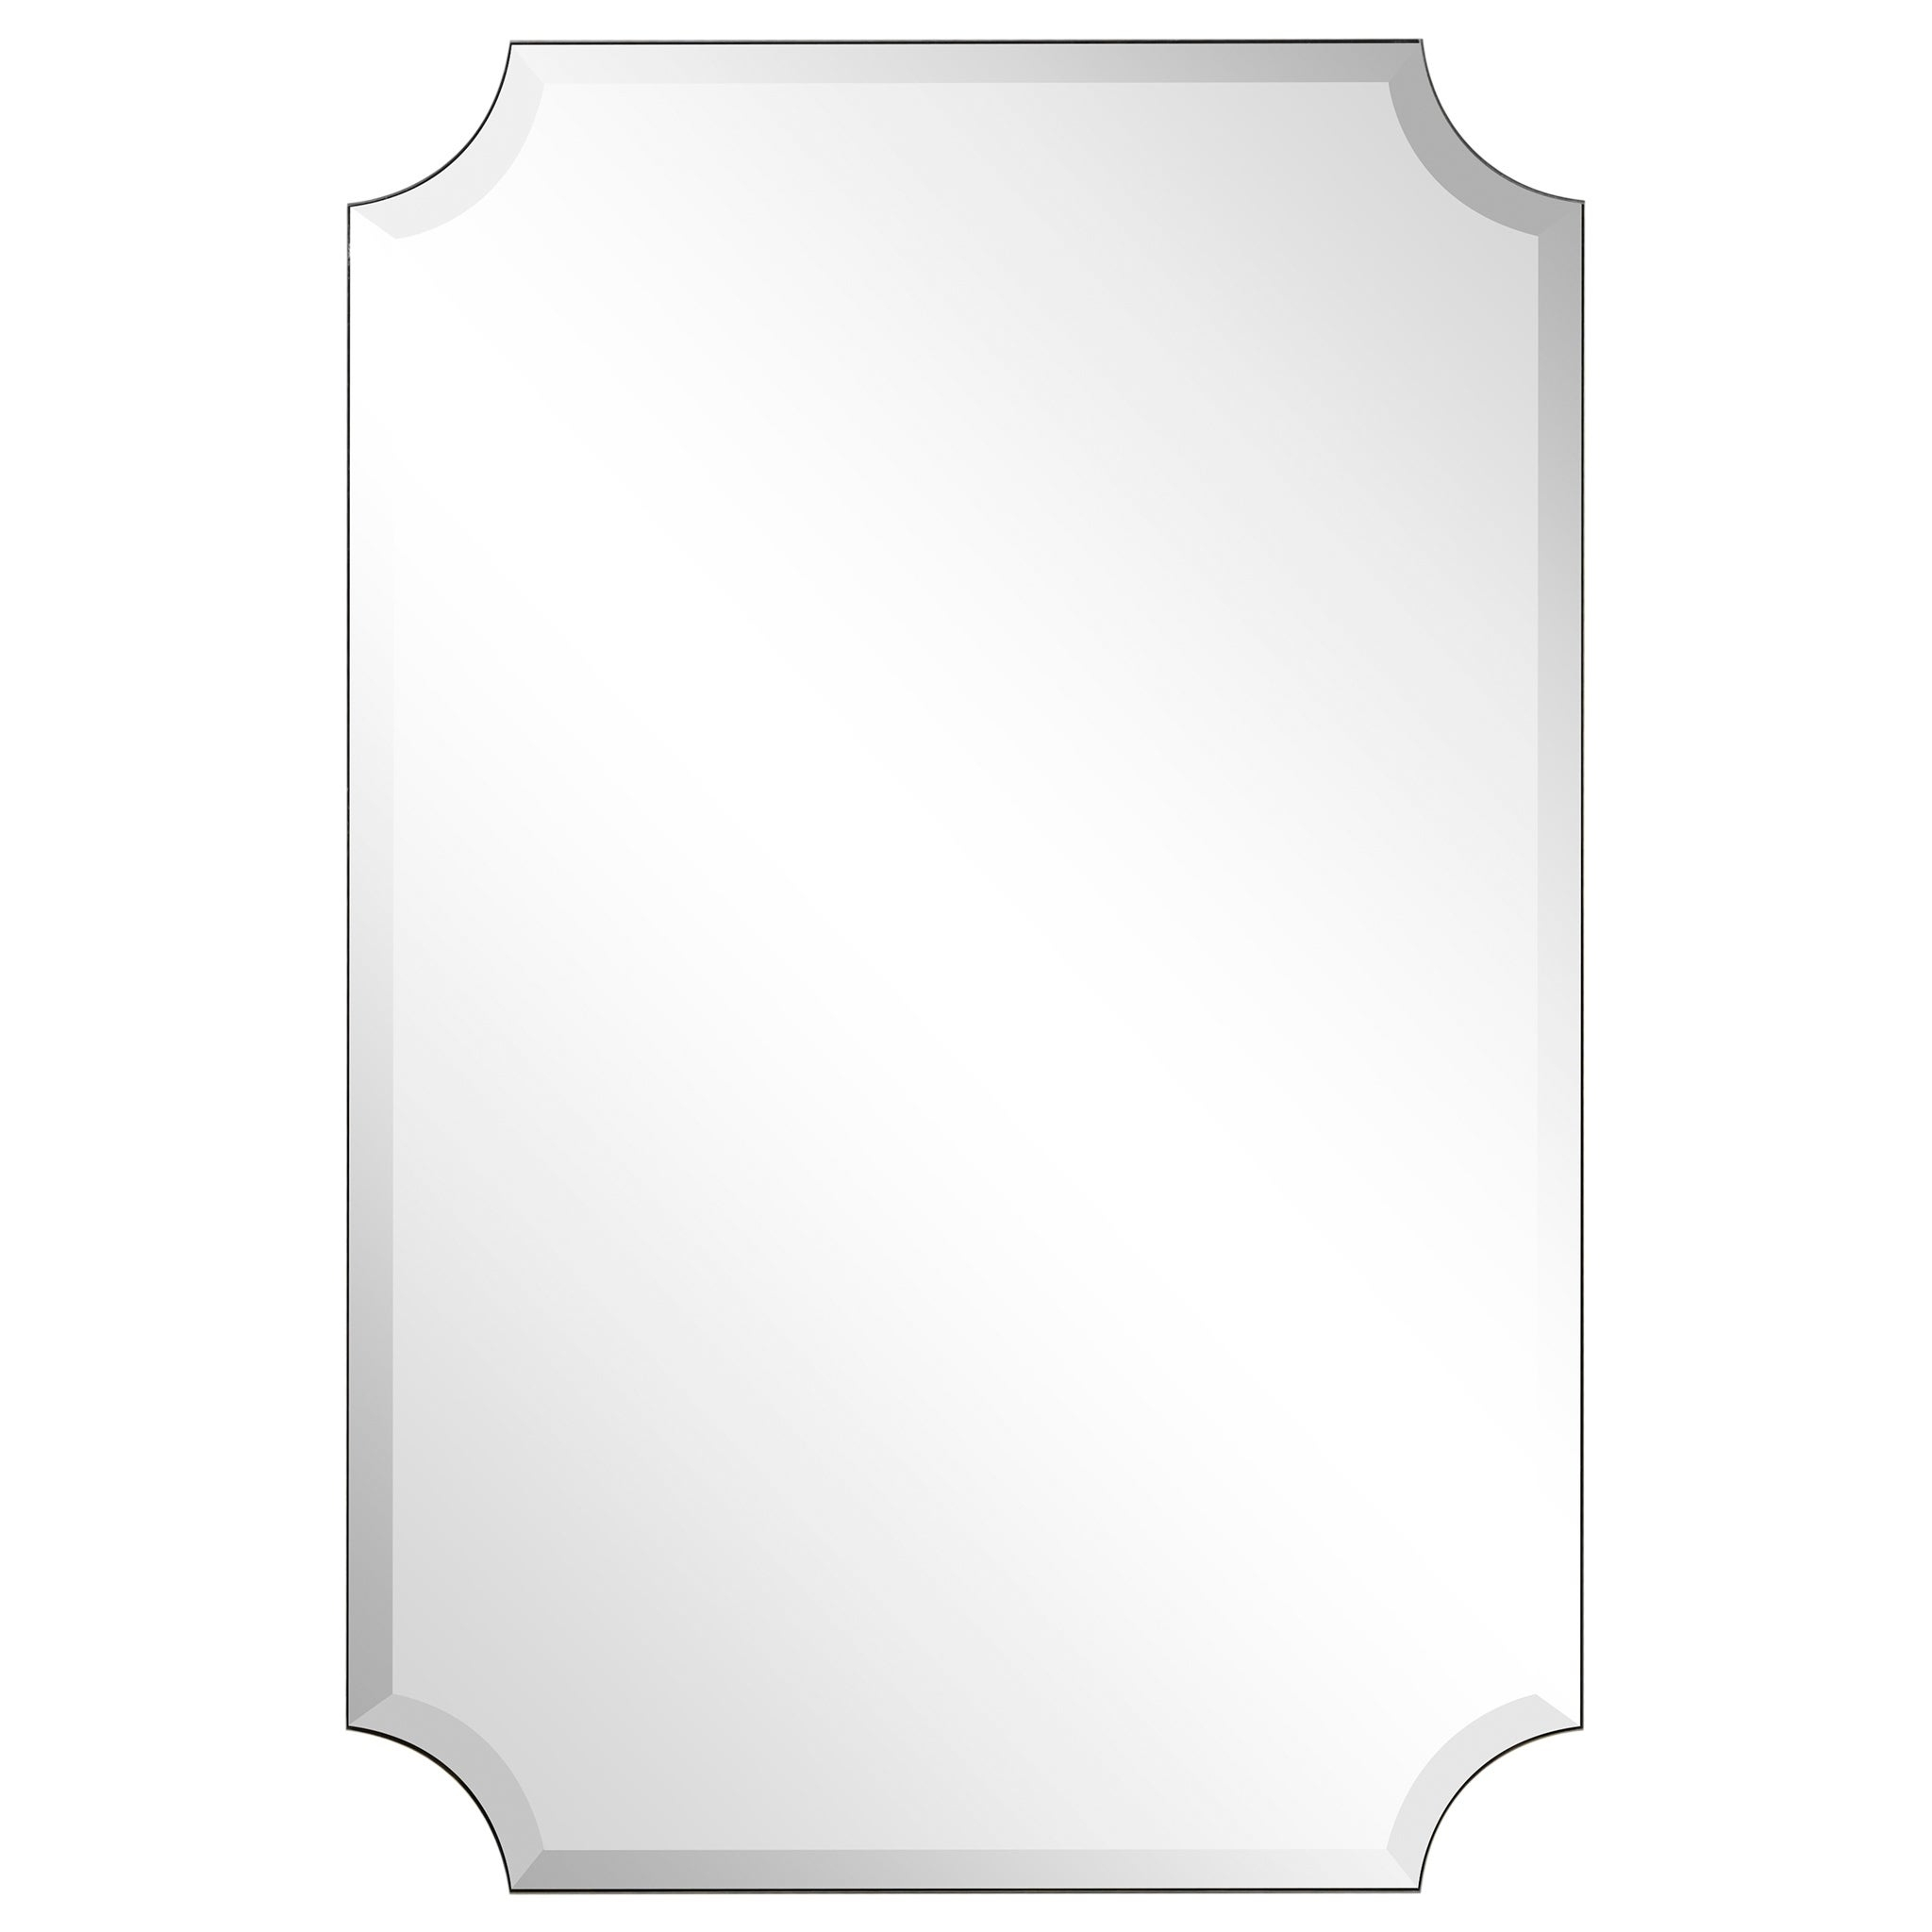 "Frameless Rectangle Scalloped Beveled Mirror, Bathroom, Vanity, Bedroom  Mirror,1"" Beveled Edge – Clear With Regard To Reign Frameless Oval Scalloped Beveled Wall Mirrors (Image 8 of 20)"